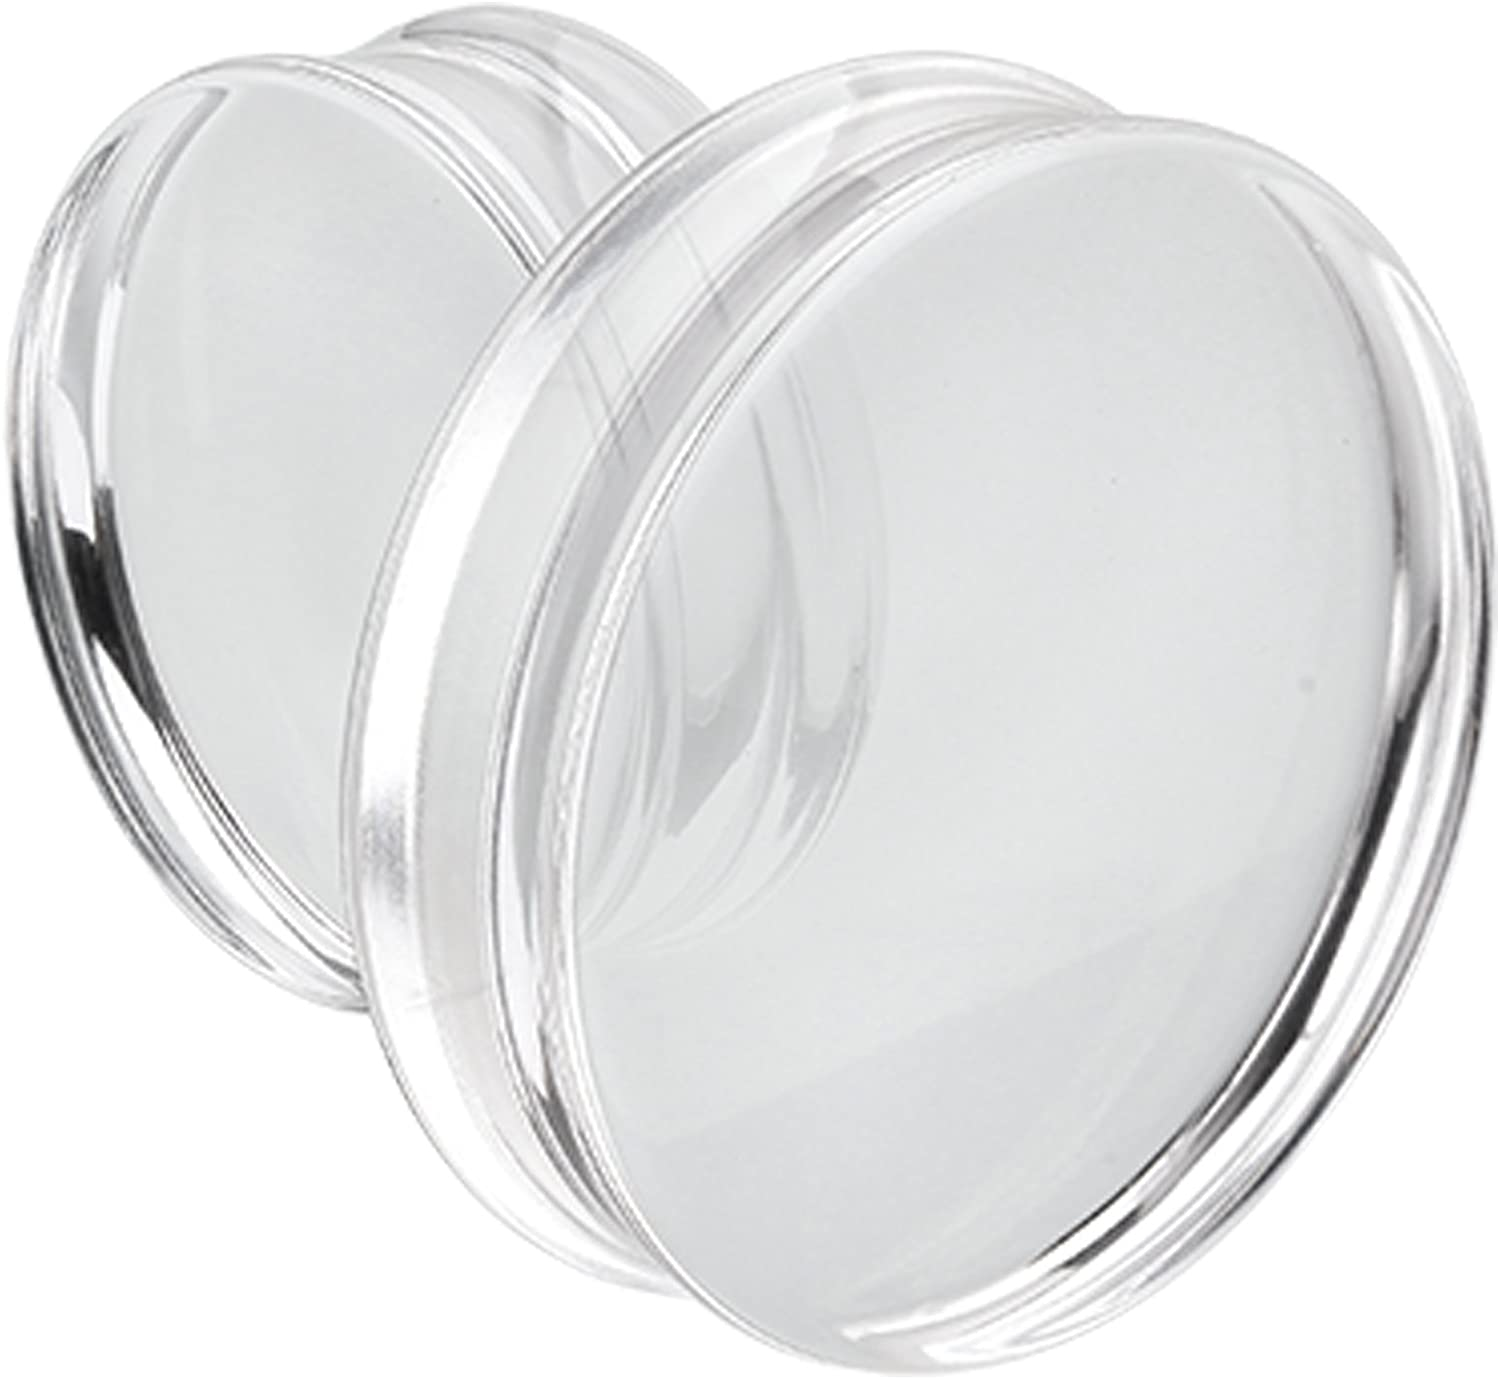 Black Basic Acrylic Double Flared Ear TunnelsSold as Pairs